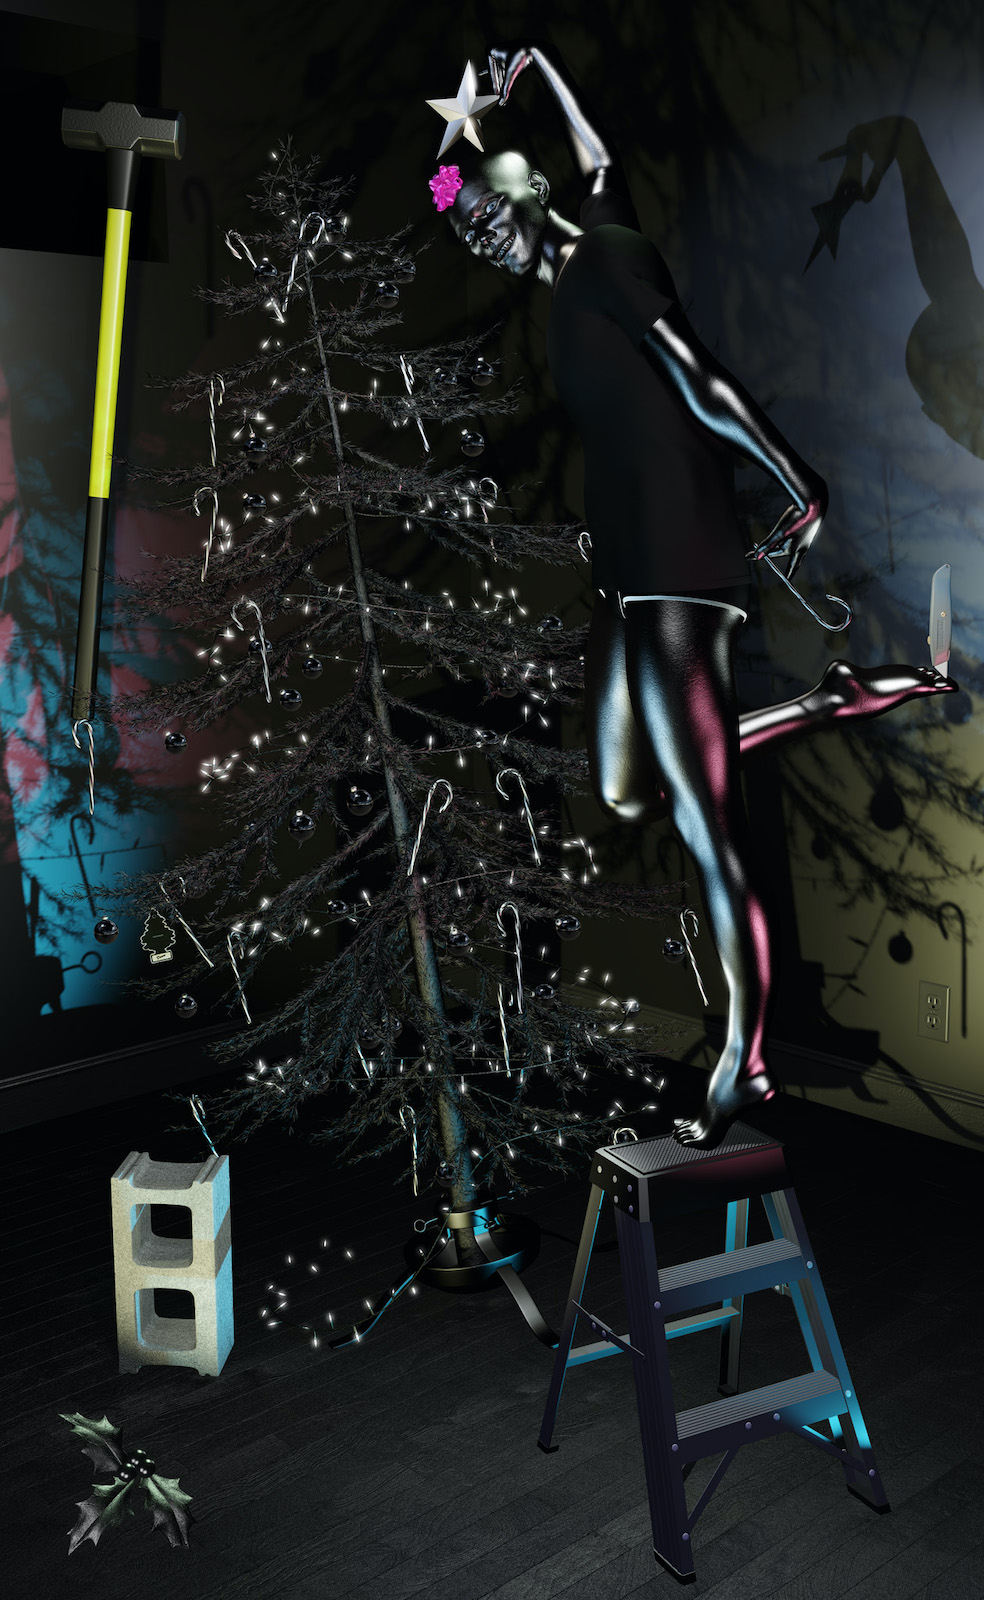 Person in a dark room standing on a ladder decorating a black Christmas tree.